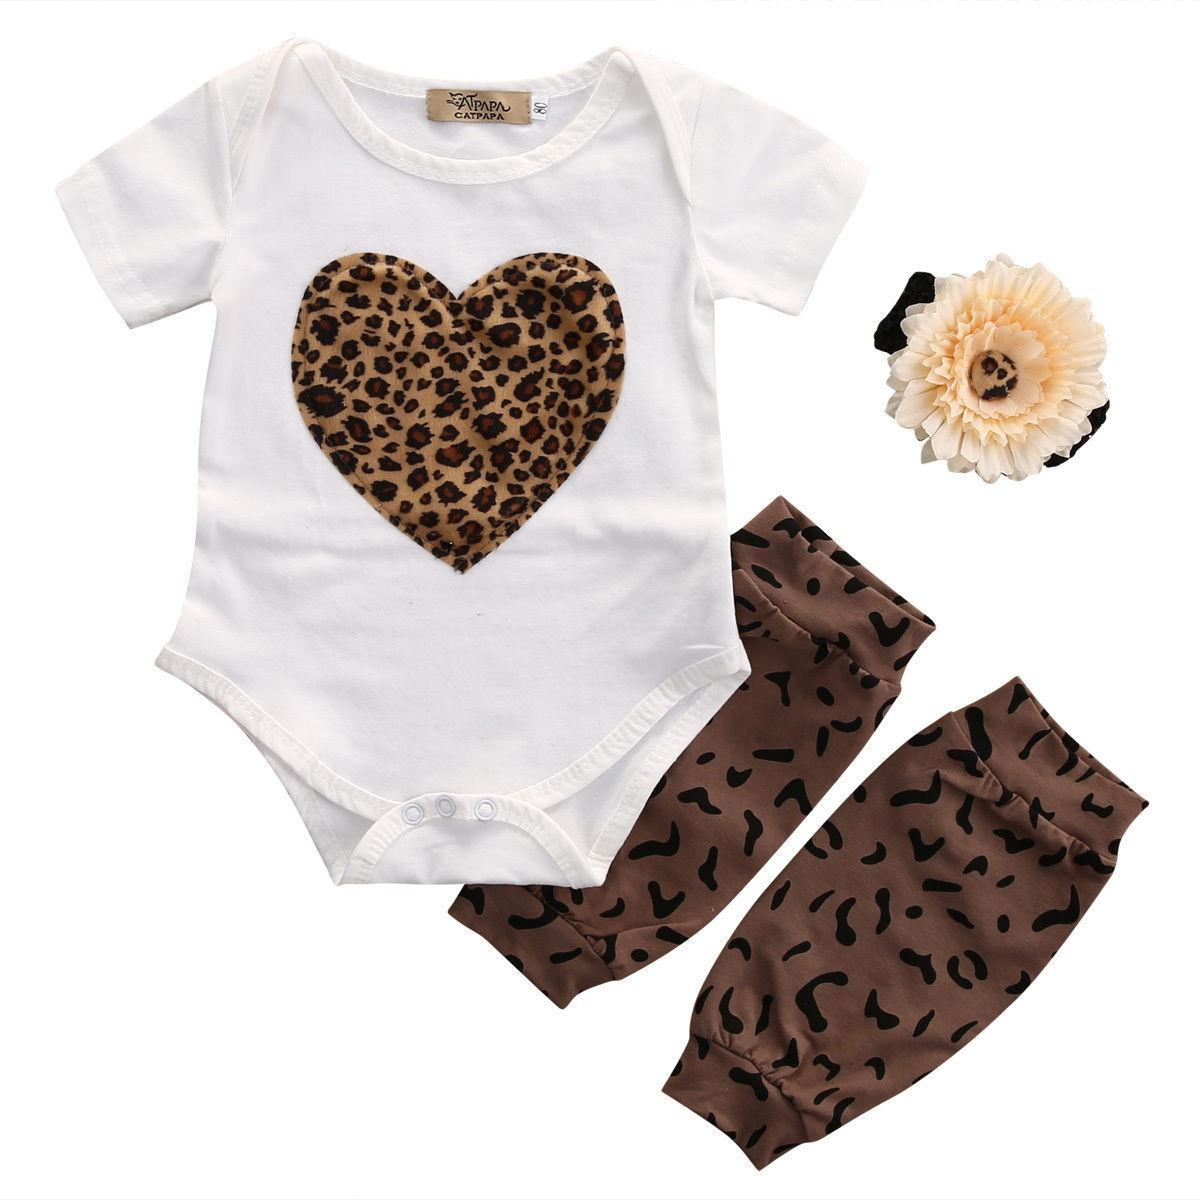 3pcs New Casual Newborn Kids Baby Girl Clothes Romper+Leg Warmer+Headband Outfit Set US STOCK